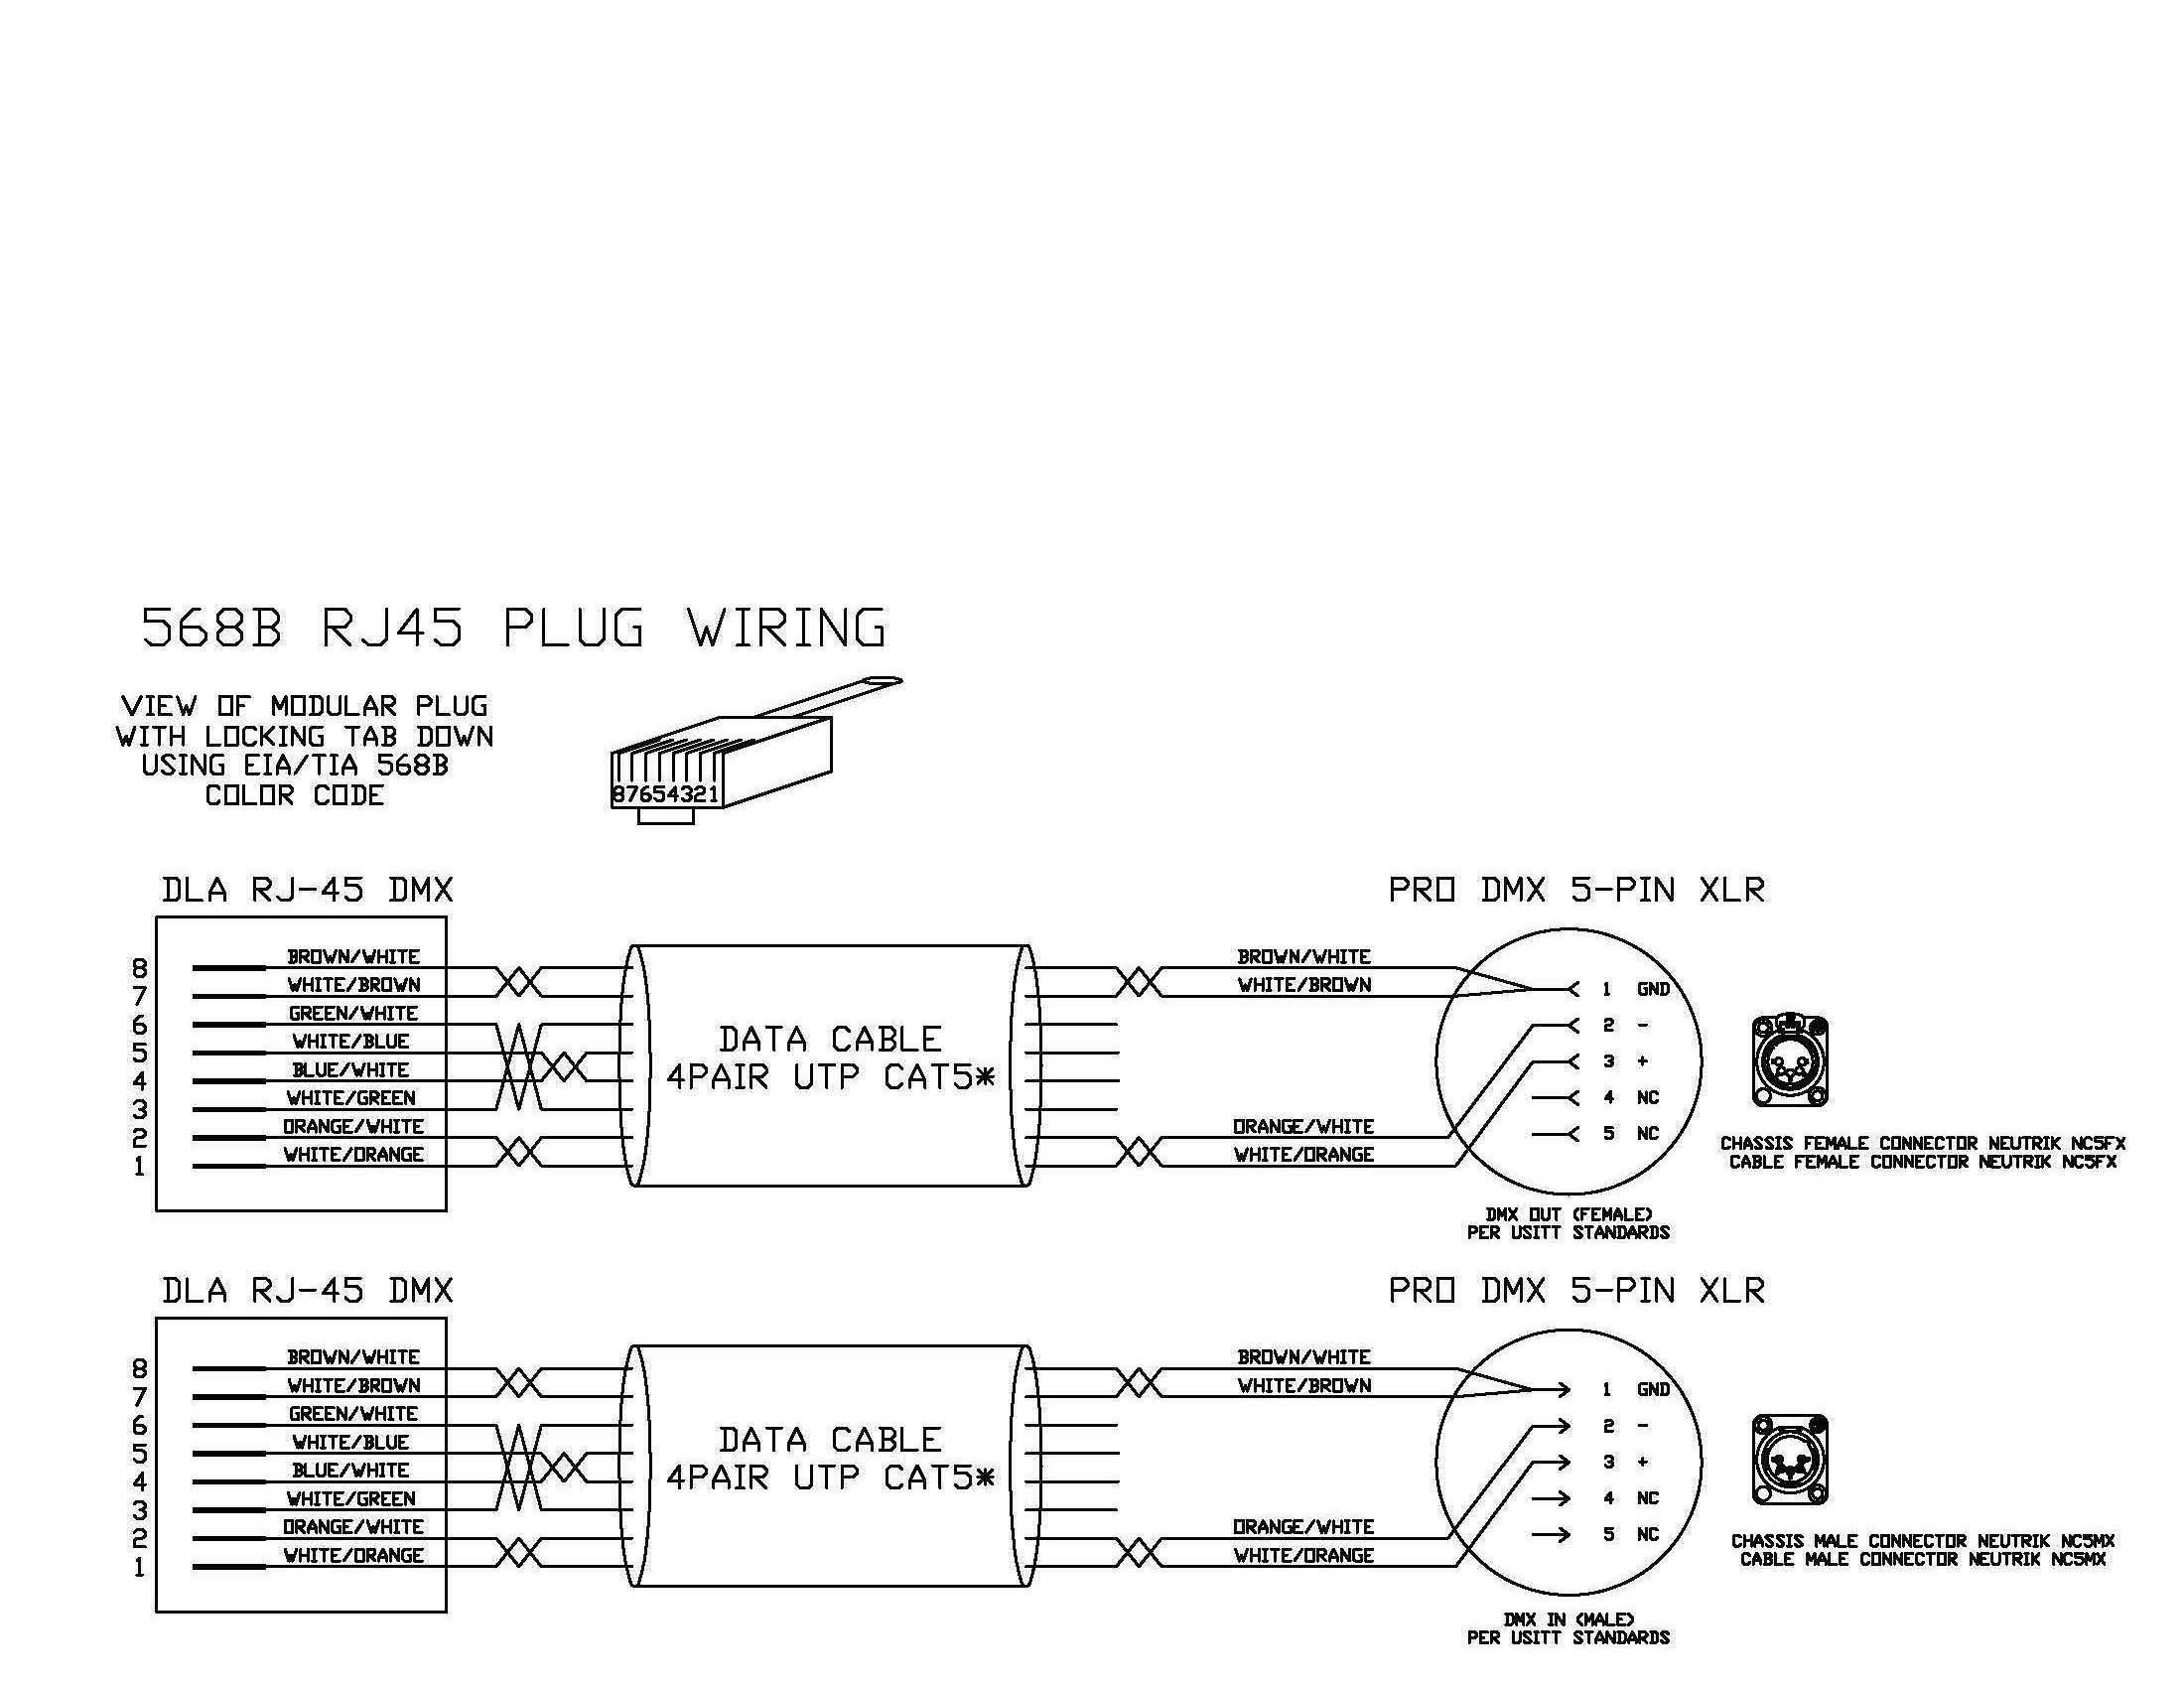 e975ddb6a839e630c21b81db05ca4fa6 xlr to rj45 wiring diagram xlr electrical wiring diagrams xlr wiring color codes at eliteediting.co